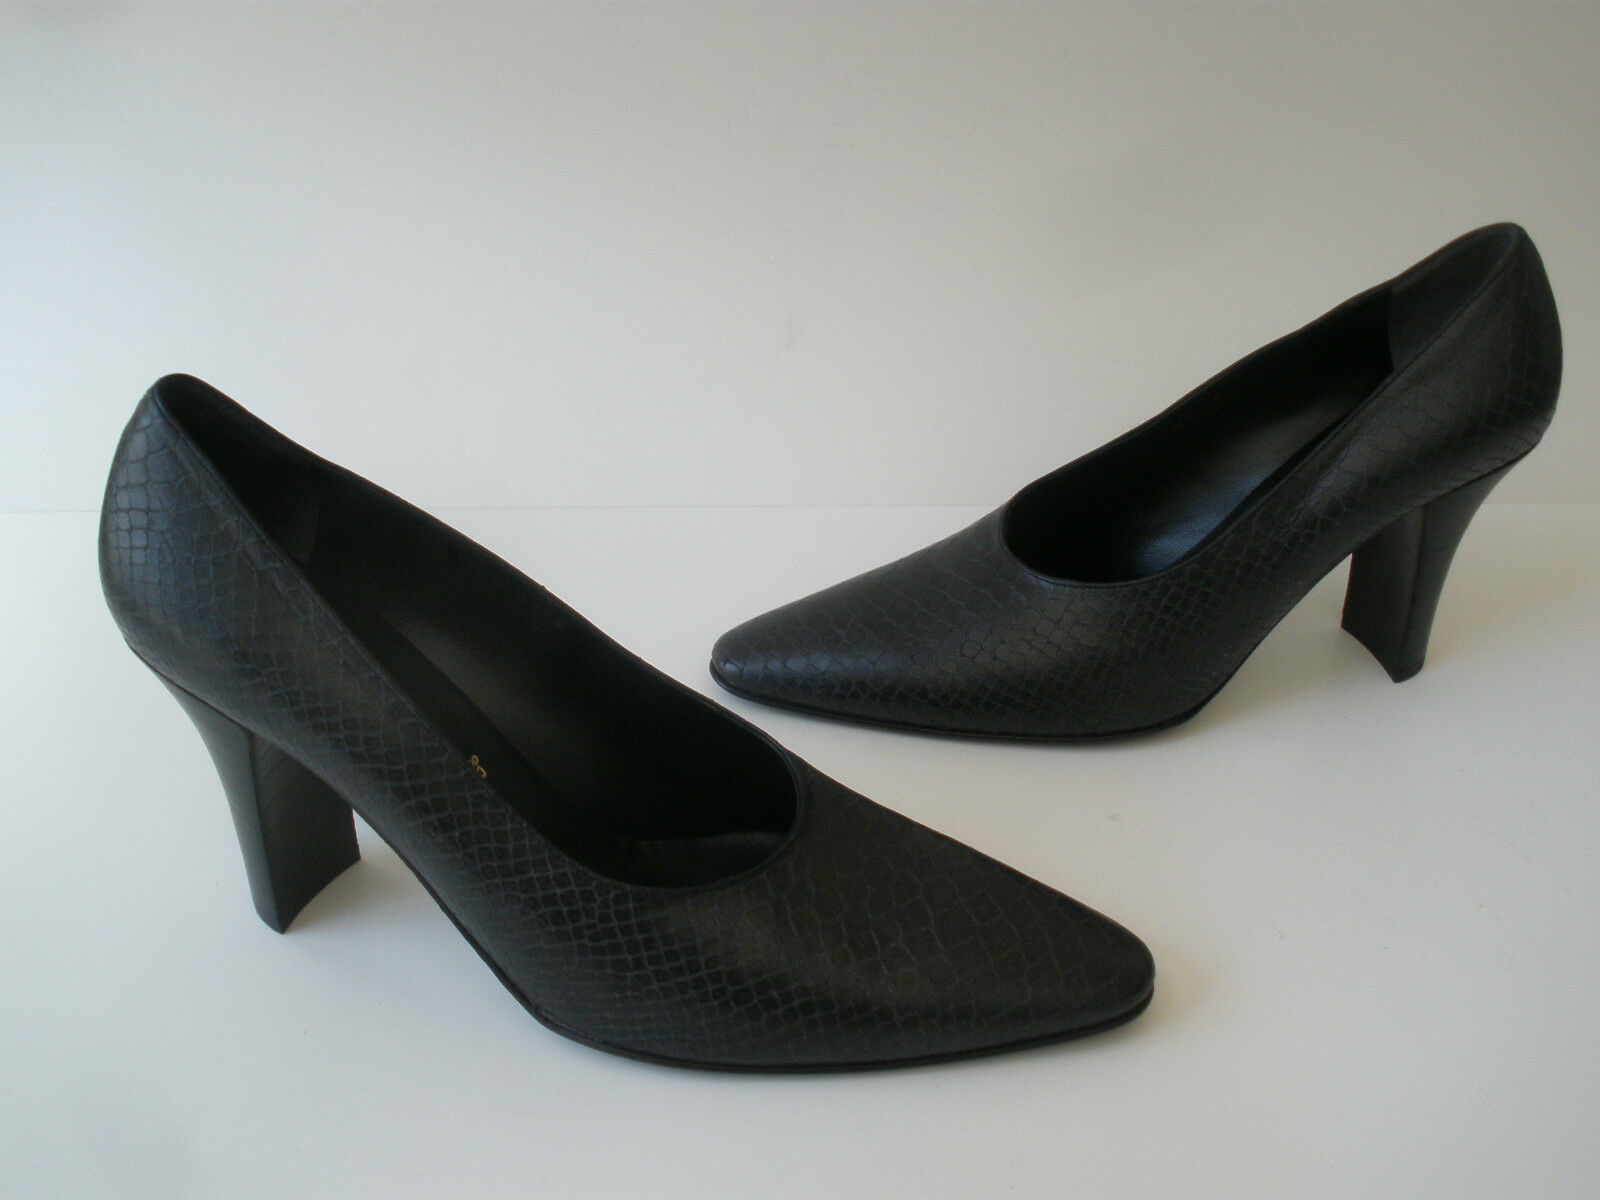 ROBERT CLERGEIRE PARIS LEATHER PUMP HEELS 9.5 HOT MADE IN FRANCE 495